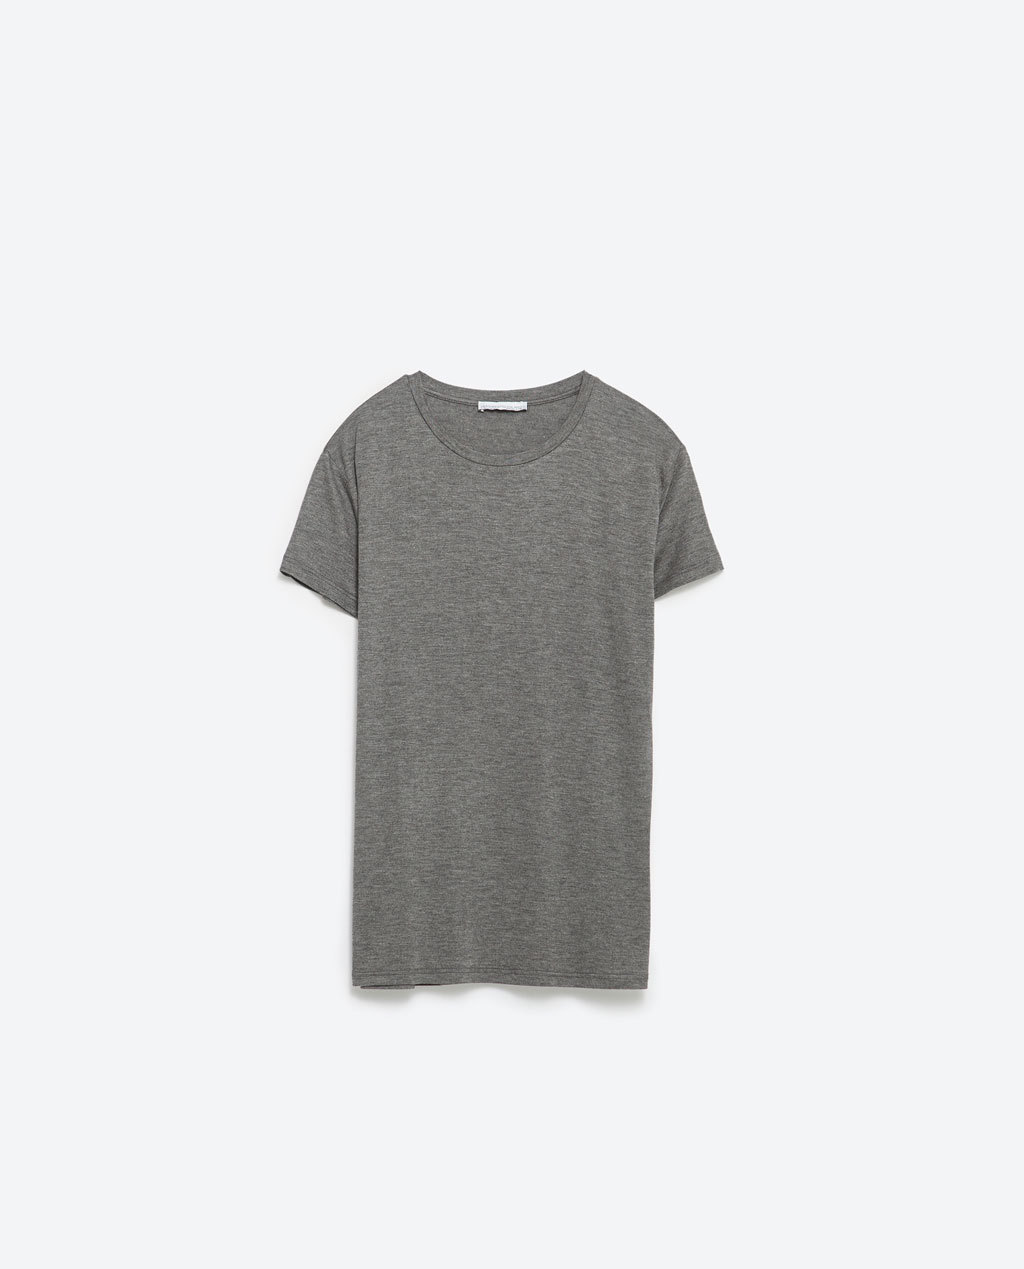 Basic T Shirt - neckline: round neck; pattern: plain; style: t-shirt; predominant colour: mid grey; occasions: casual; length: standard; fibres: viscose/rayon - stretch; fit: body skimming; sleeve length: short sleeve; sleeve style: standard; pattern type: fabric; texture group: jersey - stretchy/drapey; season: s/s 2016; wardrobe: basic